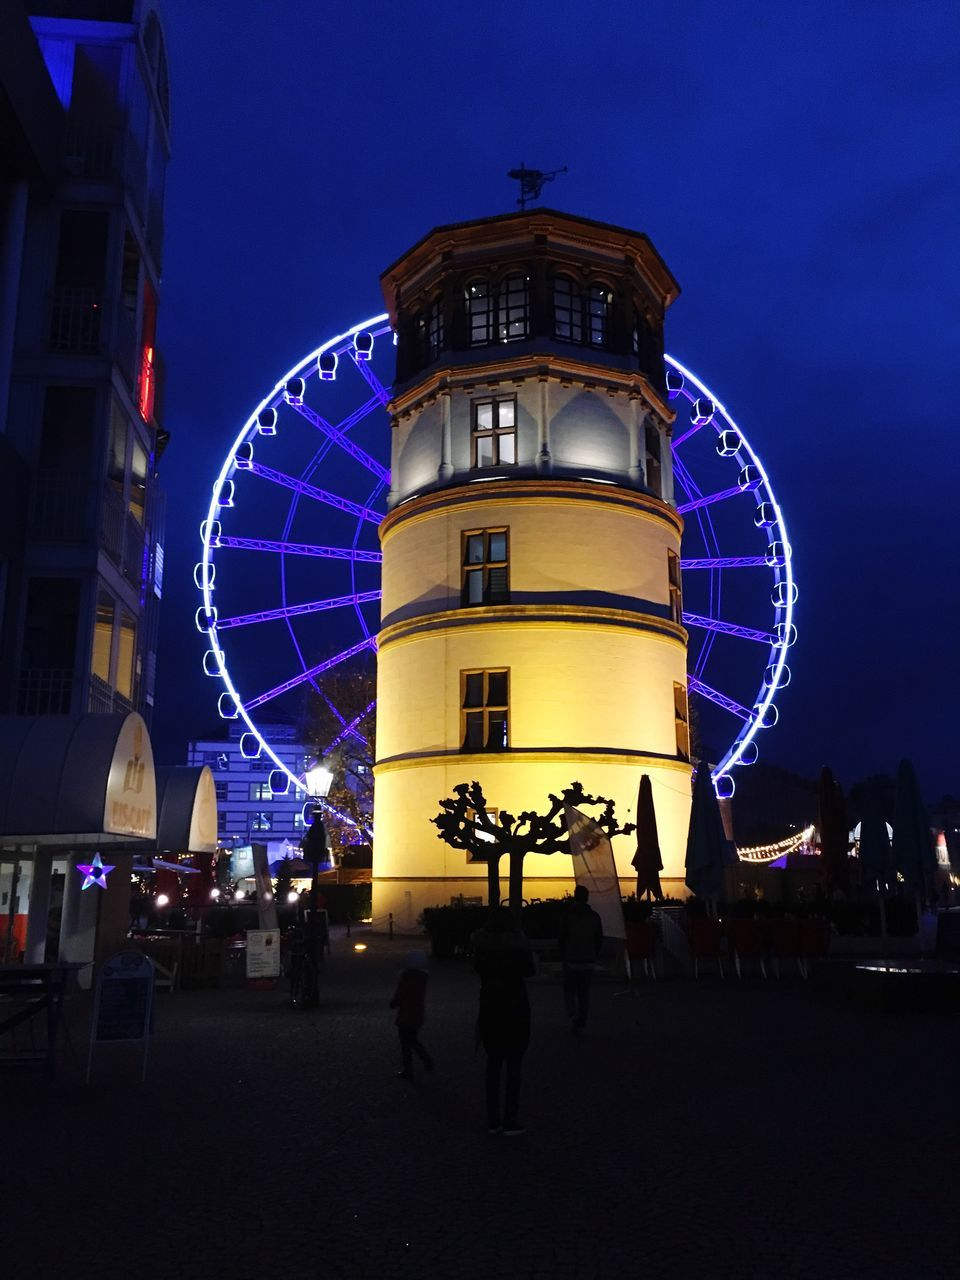 night, arts culture and entertainment, amusement park, illuminated, leisure activity, ferris wheel, built structure, architecture, amusement park ride, building exterior, real people, large group of people, outdoors, sky, enjoyment, blue, big wheel, women, men, people